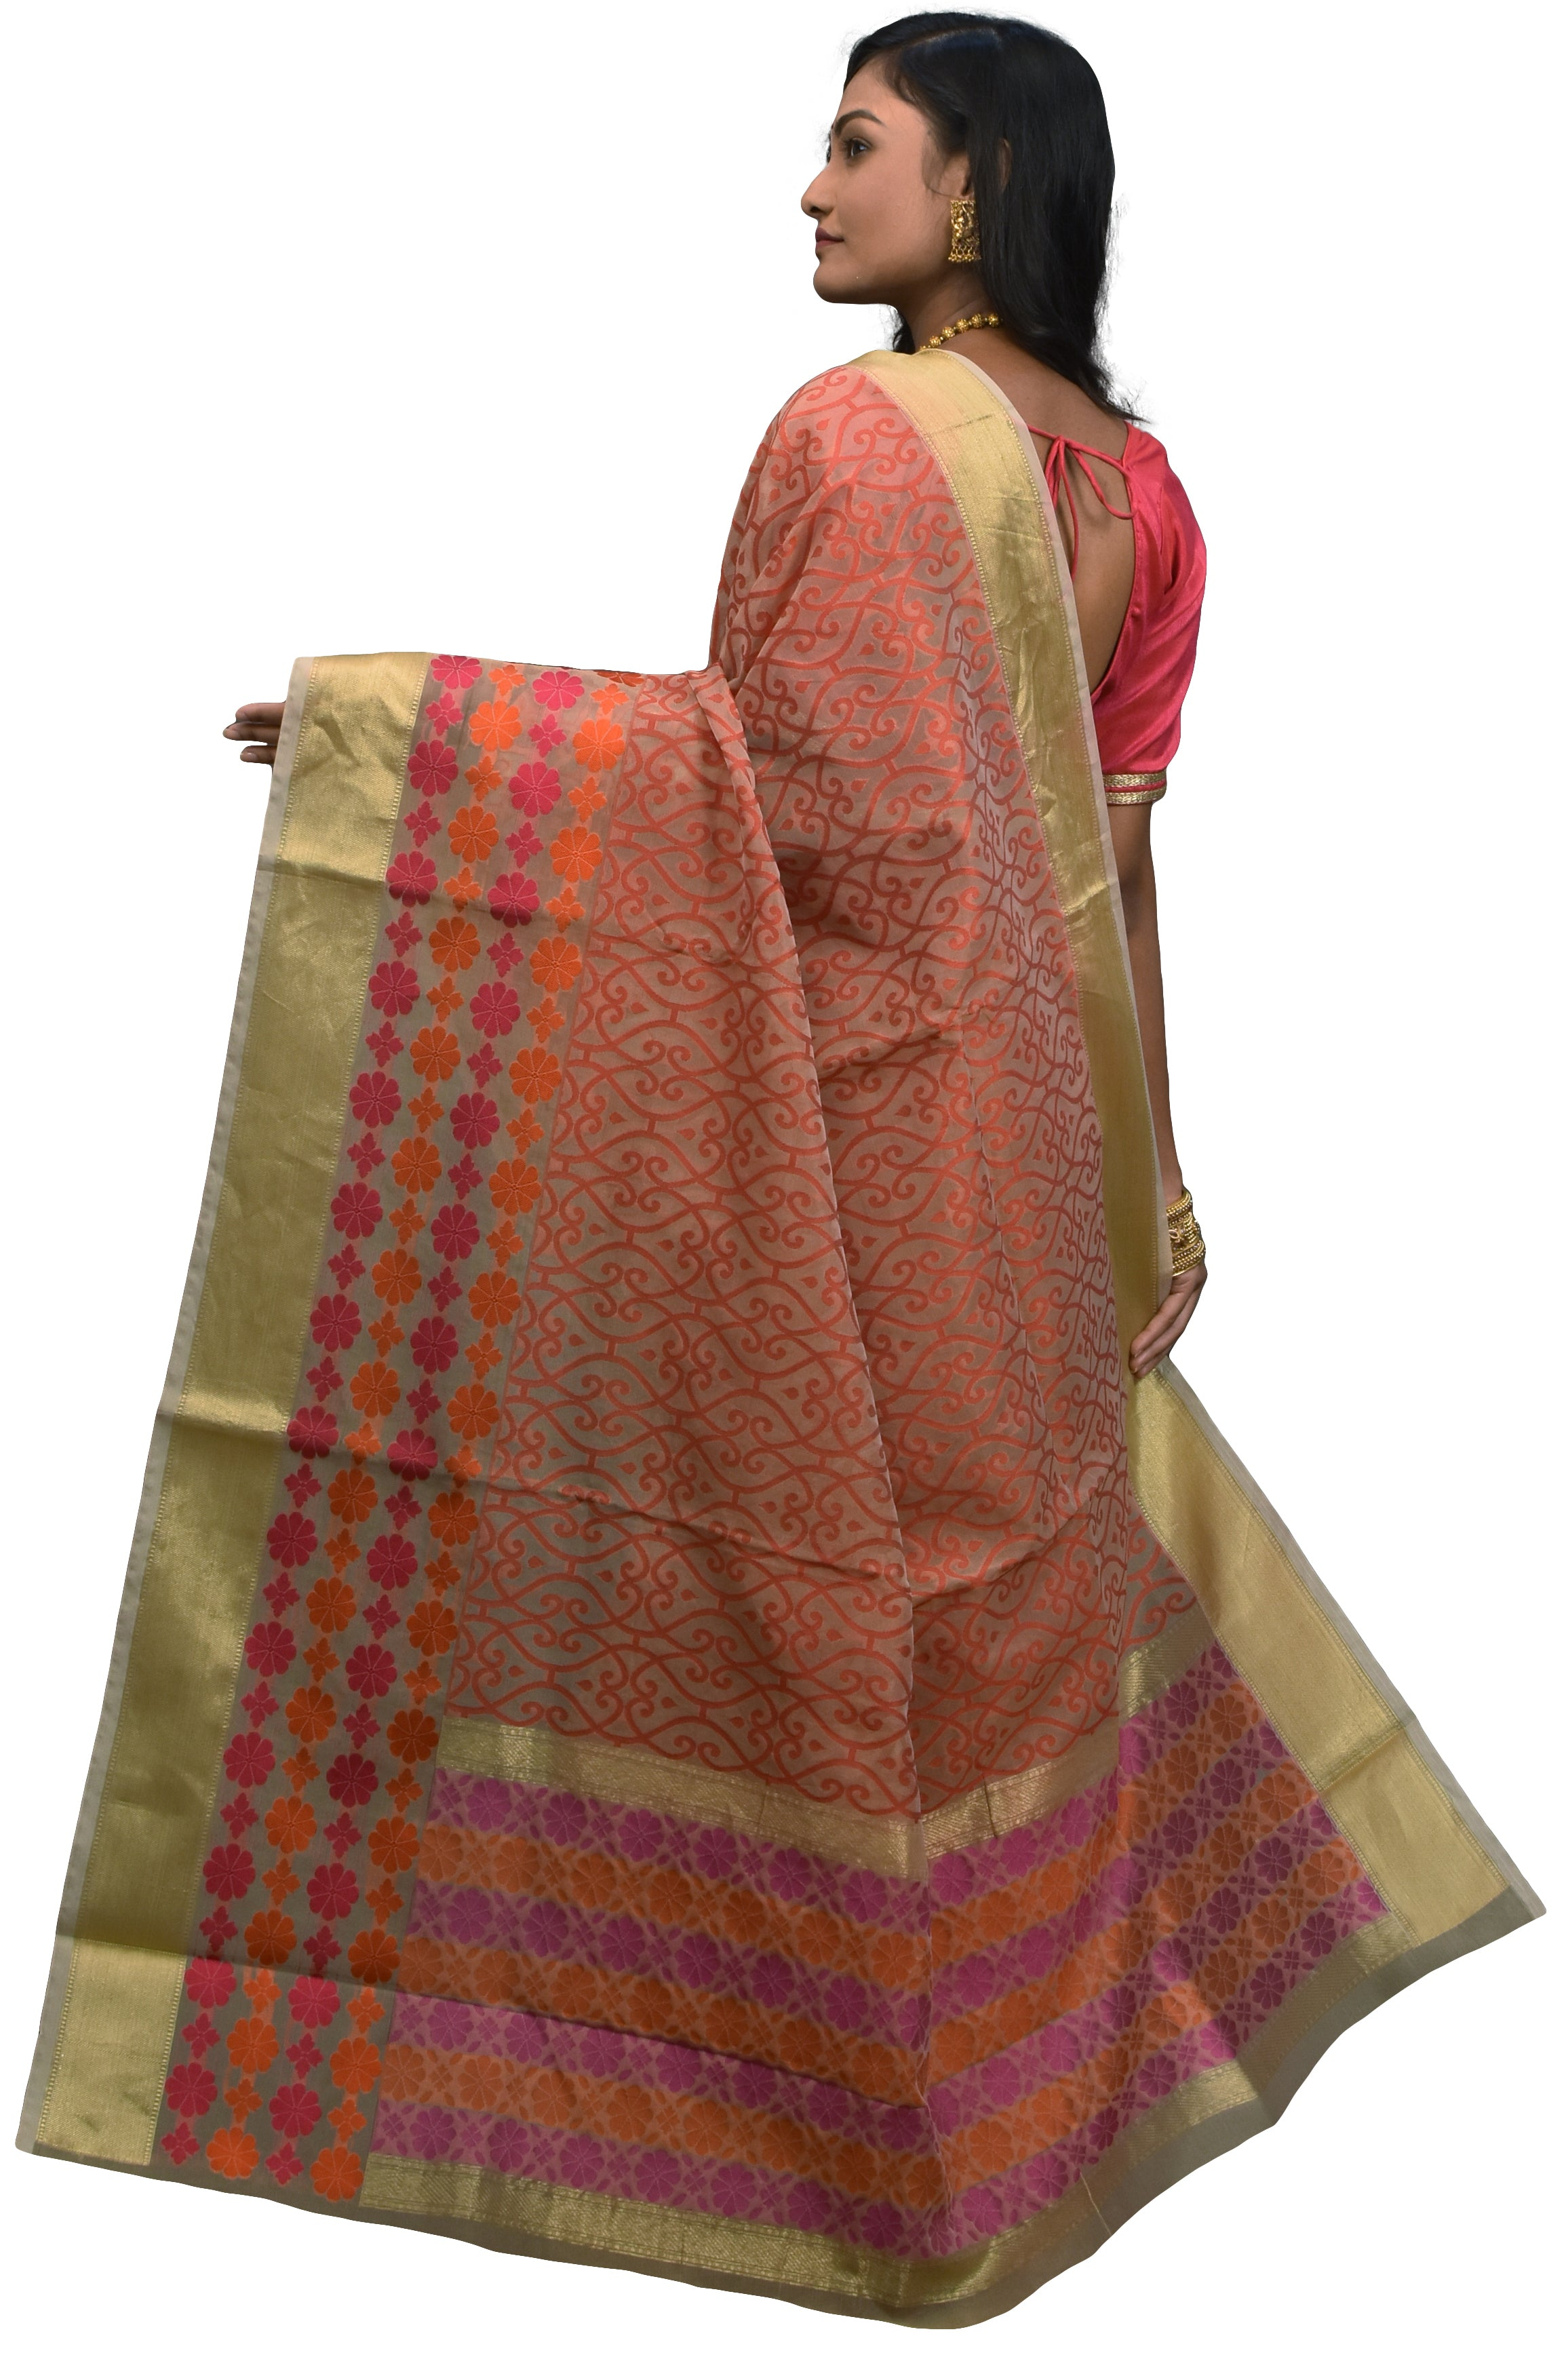 Beige & Red Traditional Designer Wedding Hand Weaven Pure Benarasi Zari Work Saree Sari With Blouse BH10B